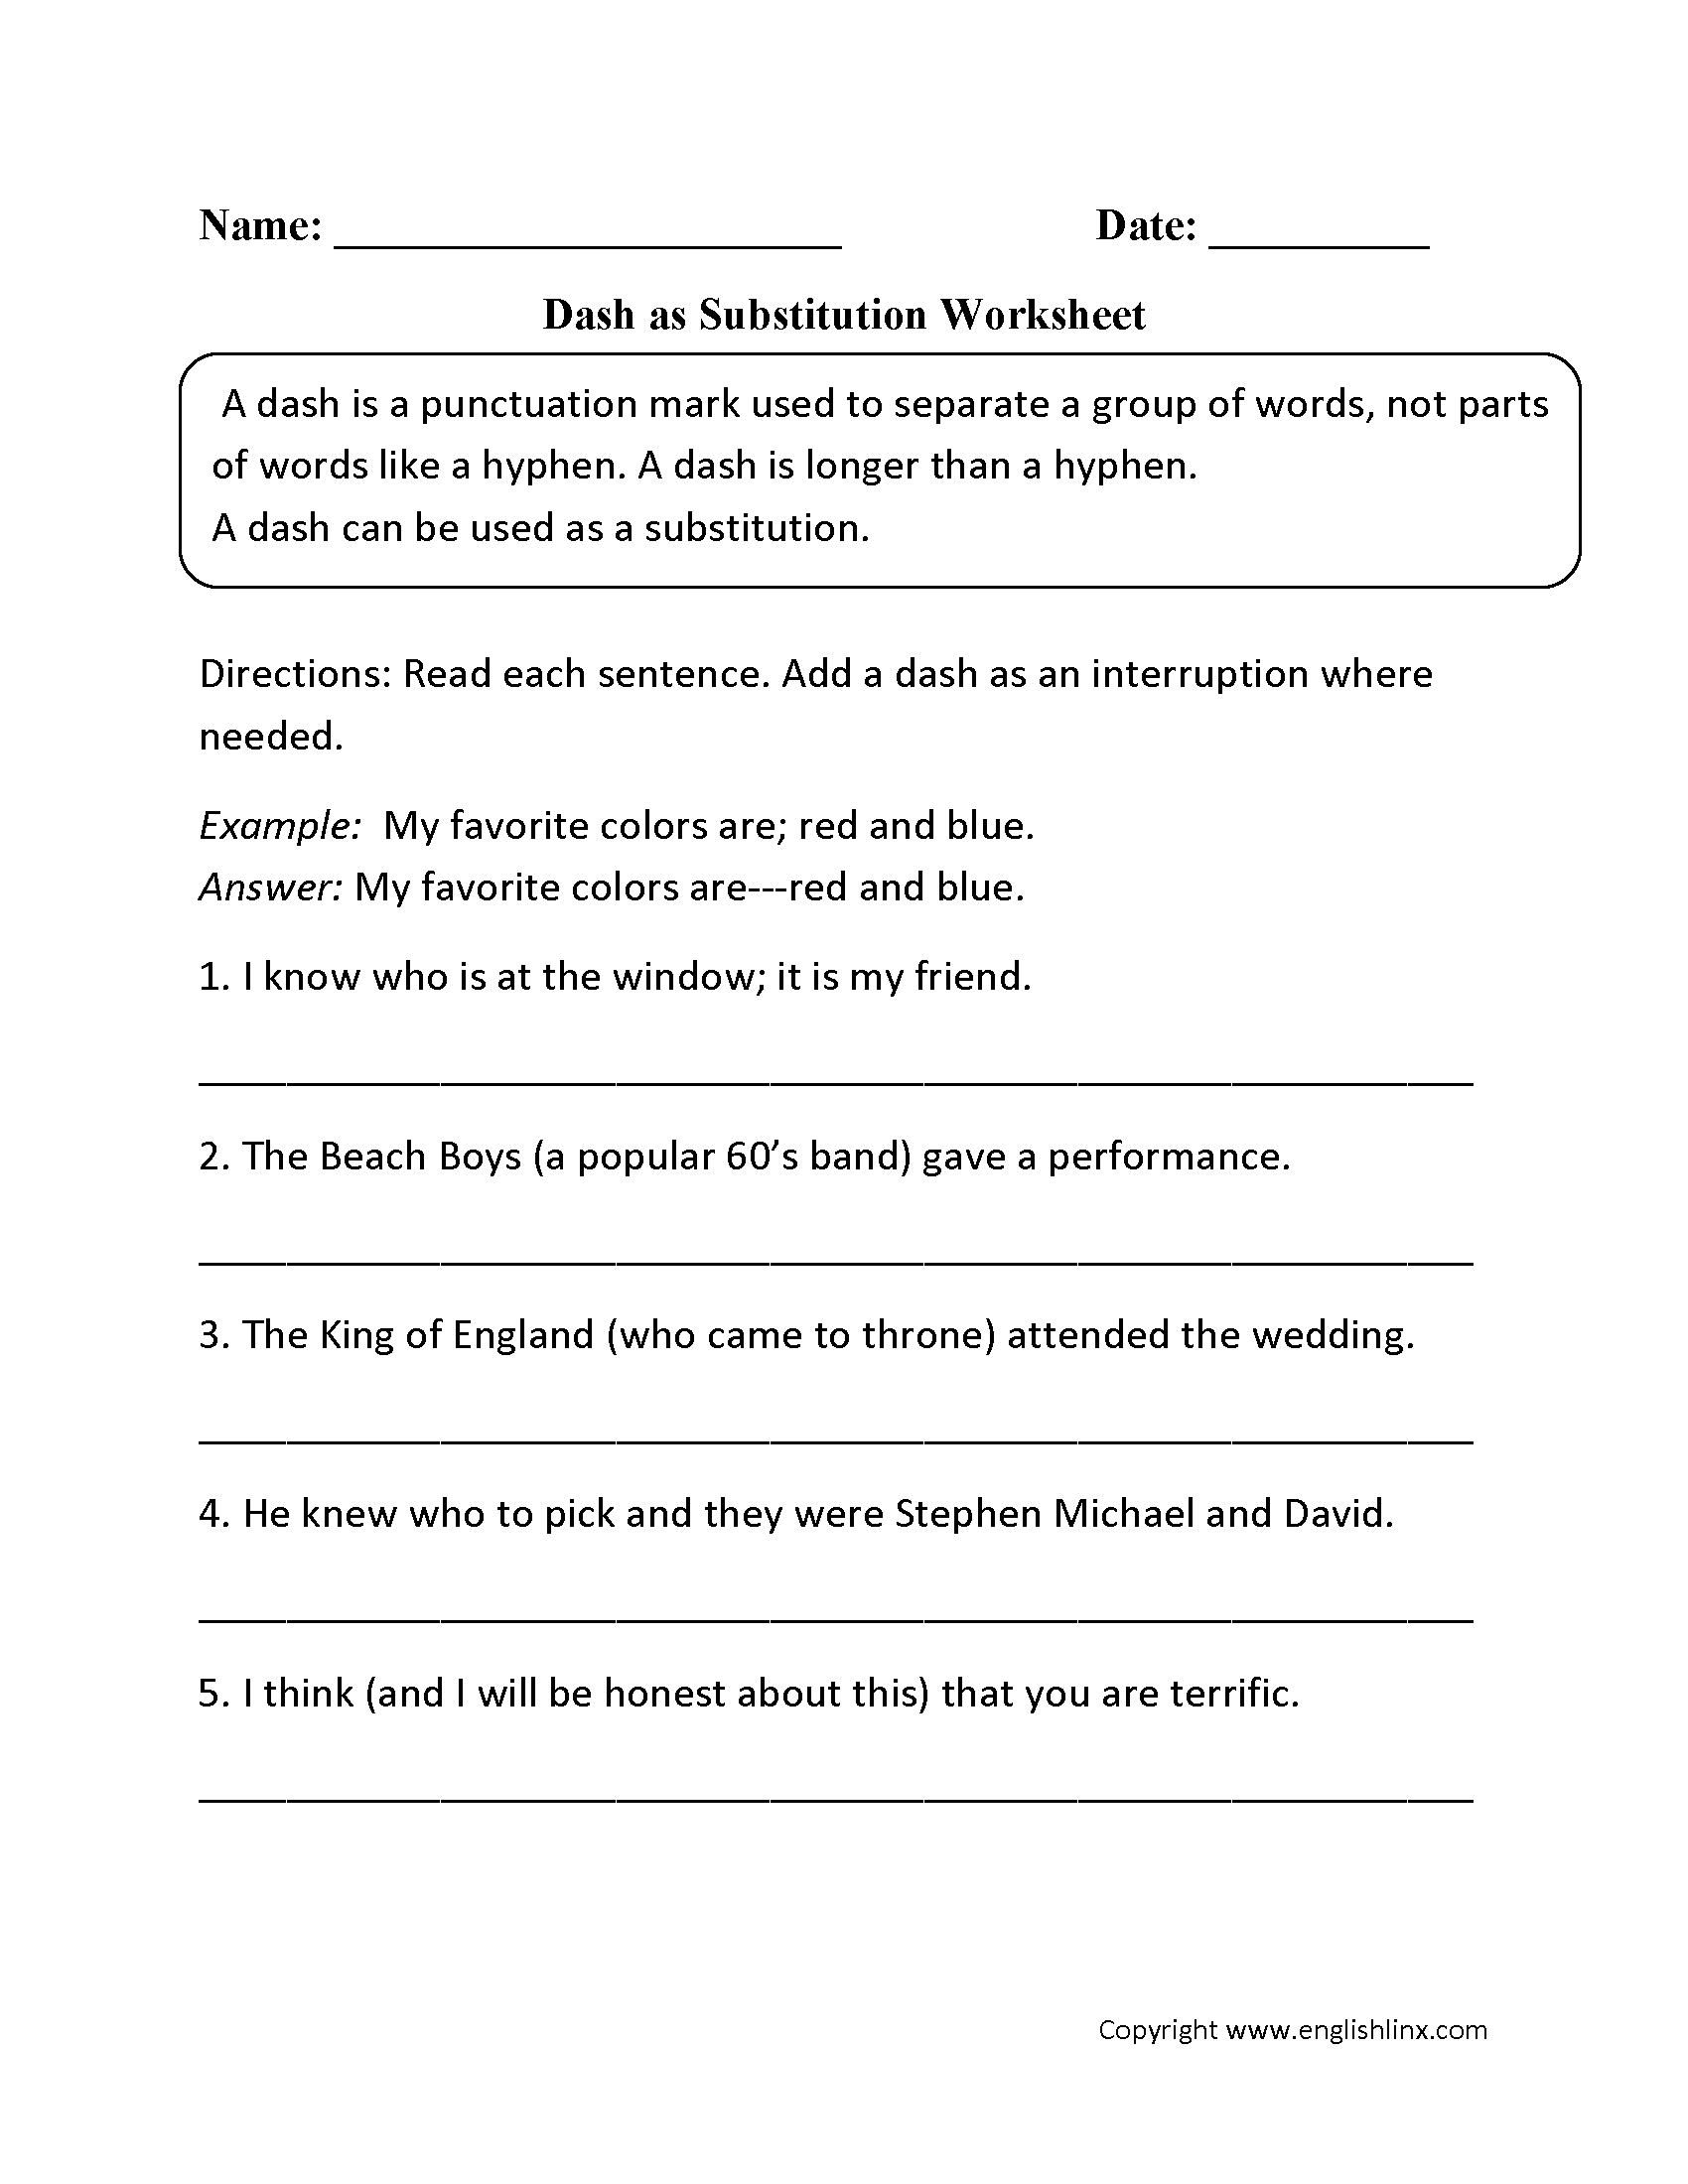 Use of dashes in business writing